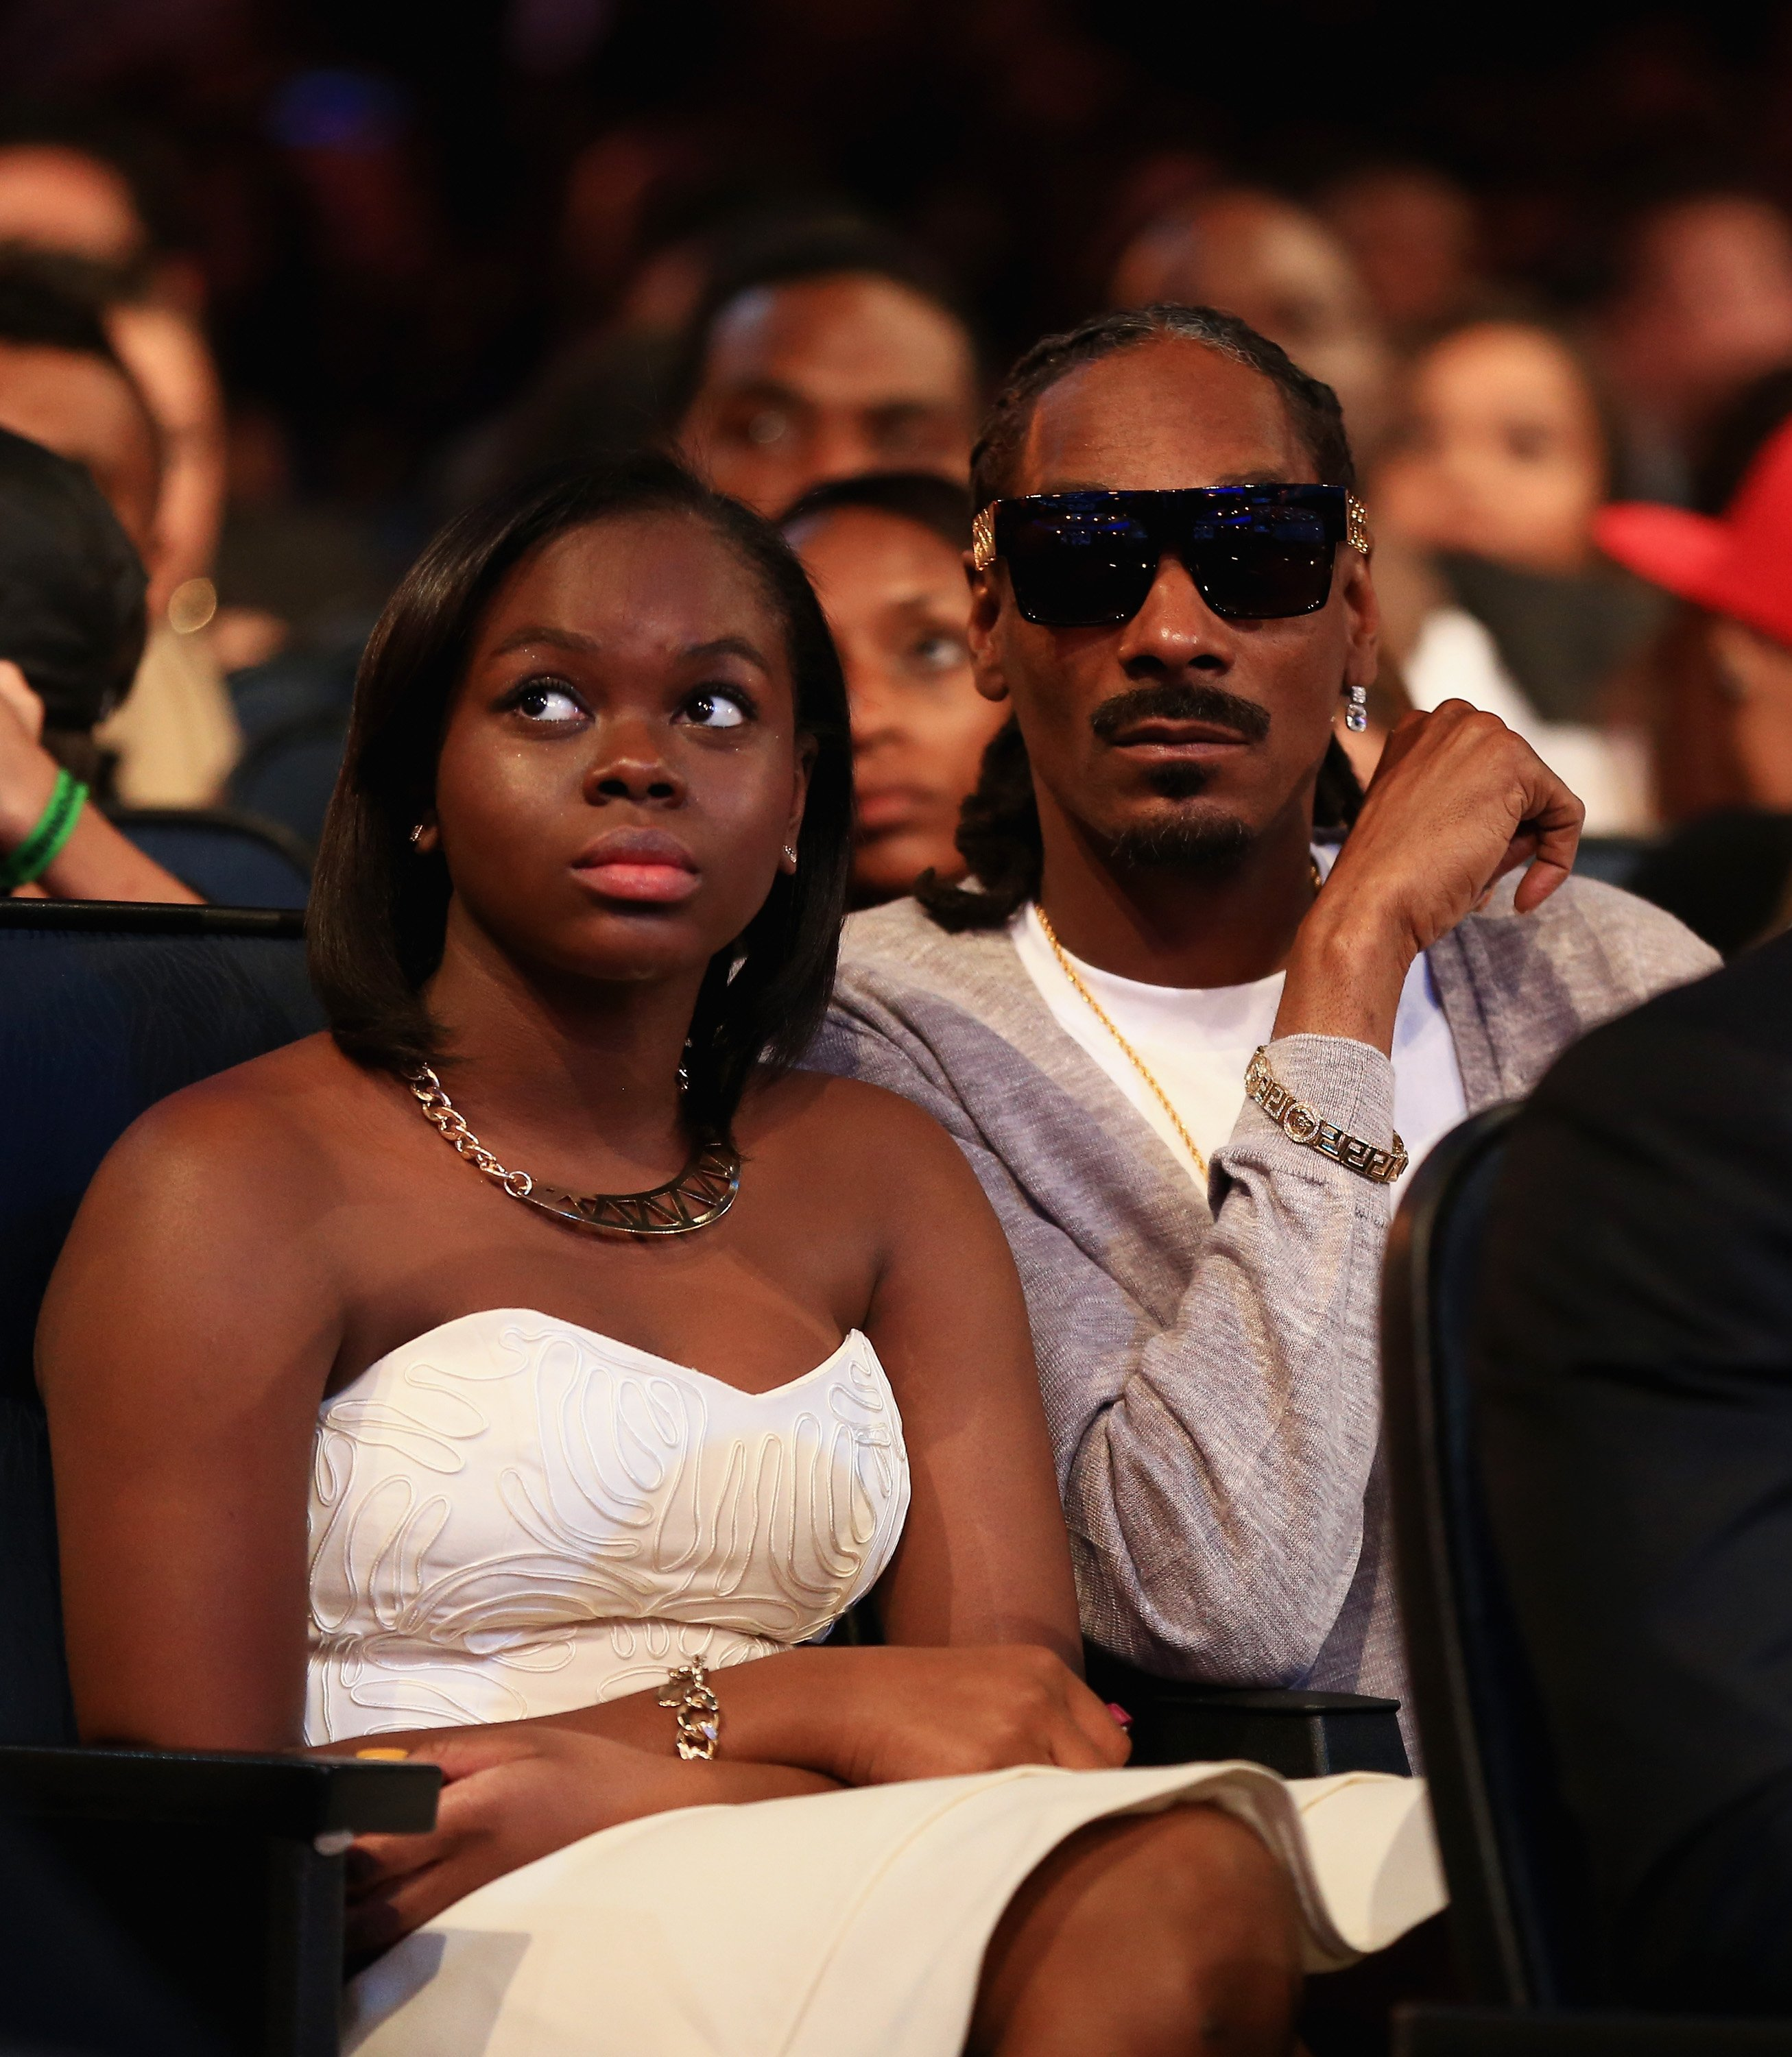 Snoop Dogg & Cori Broadus at the BET AWARDS on June 29, 2014 in California | Photo: Getty Images/GlobalImagesUkraine